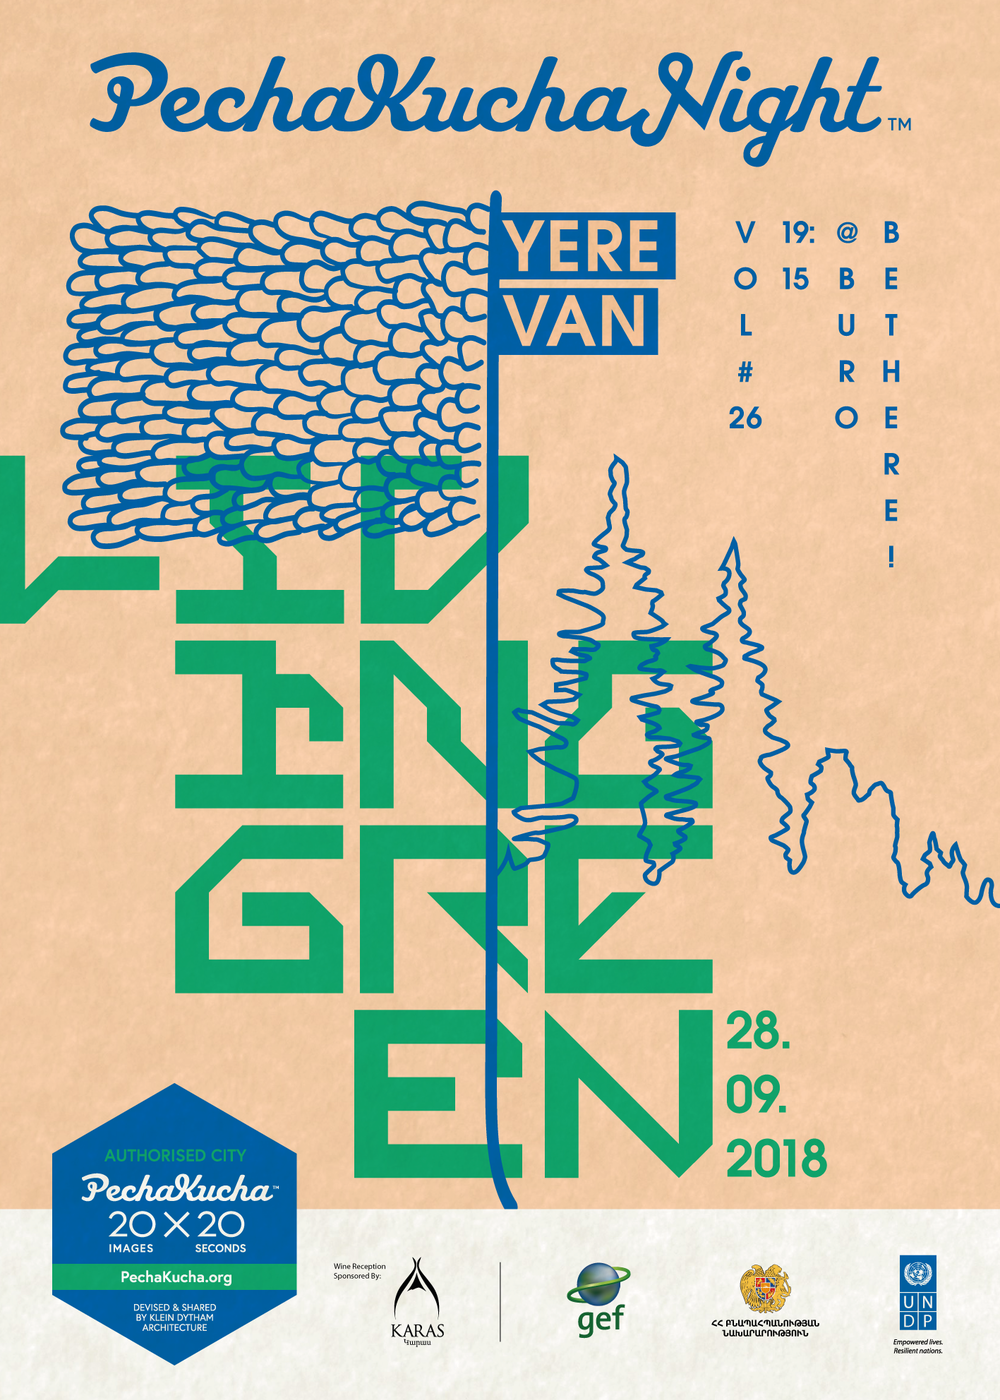 Vol. 26 - Living Green - Discovering how inspirational people are turning 'green initiatives' into some real community actions. We heard from experts and from self-starters who are already making an active difference to improving our environment.Poster by Peno Mishoyan / Proper